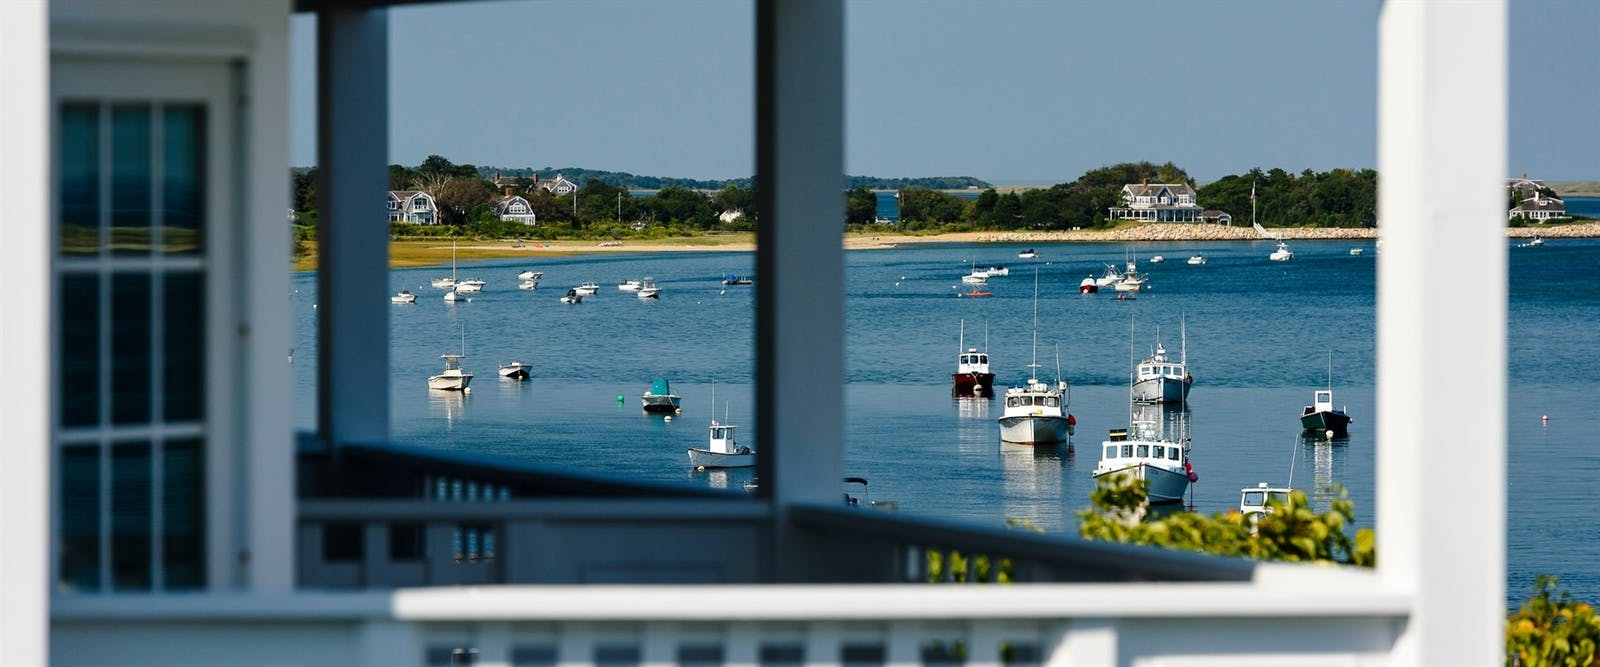 Chatham Bars Inn Views, Chatham, Cape Cod